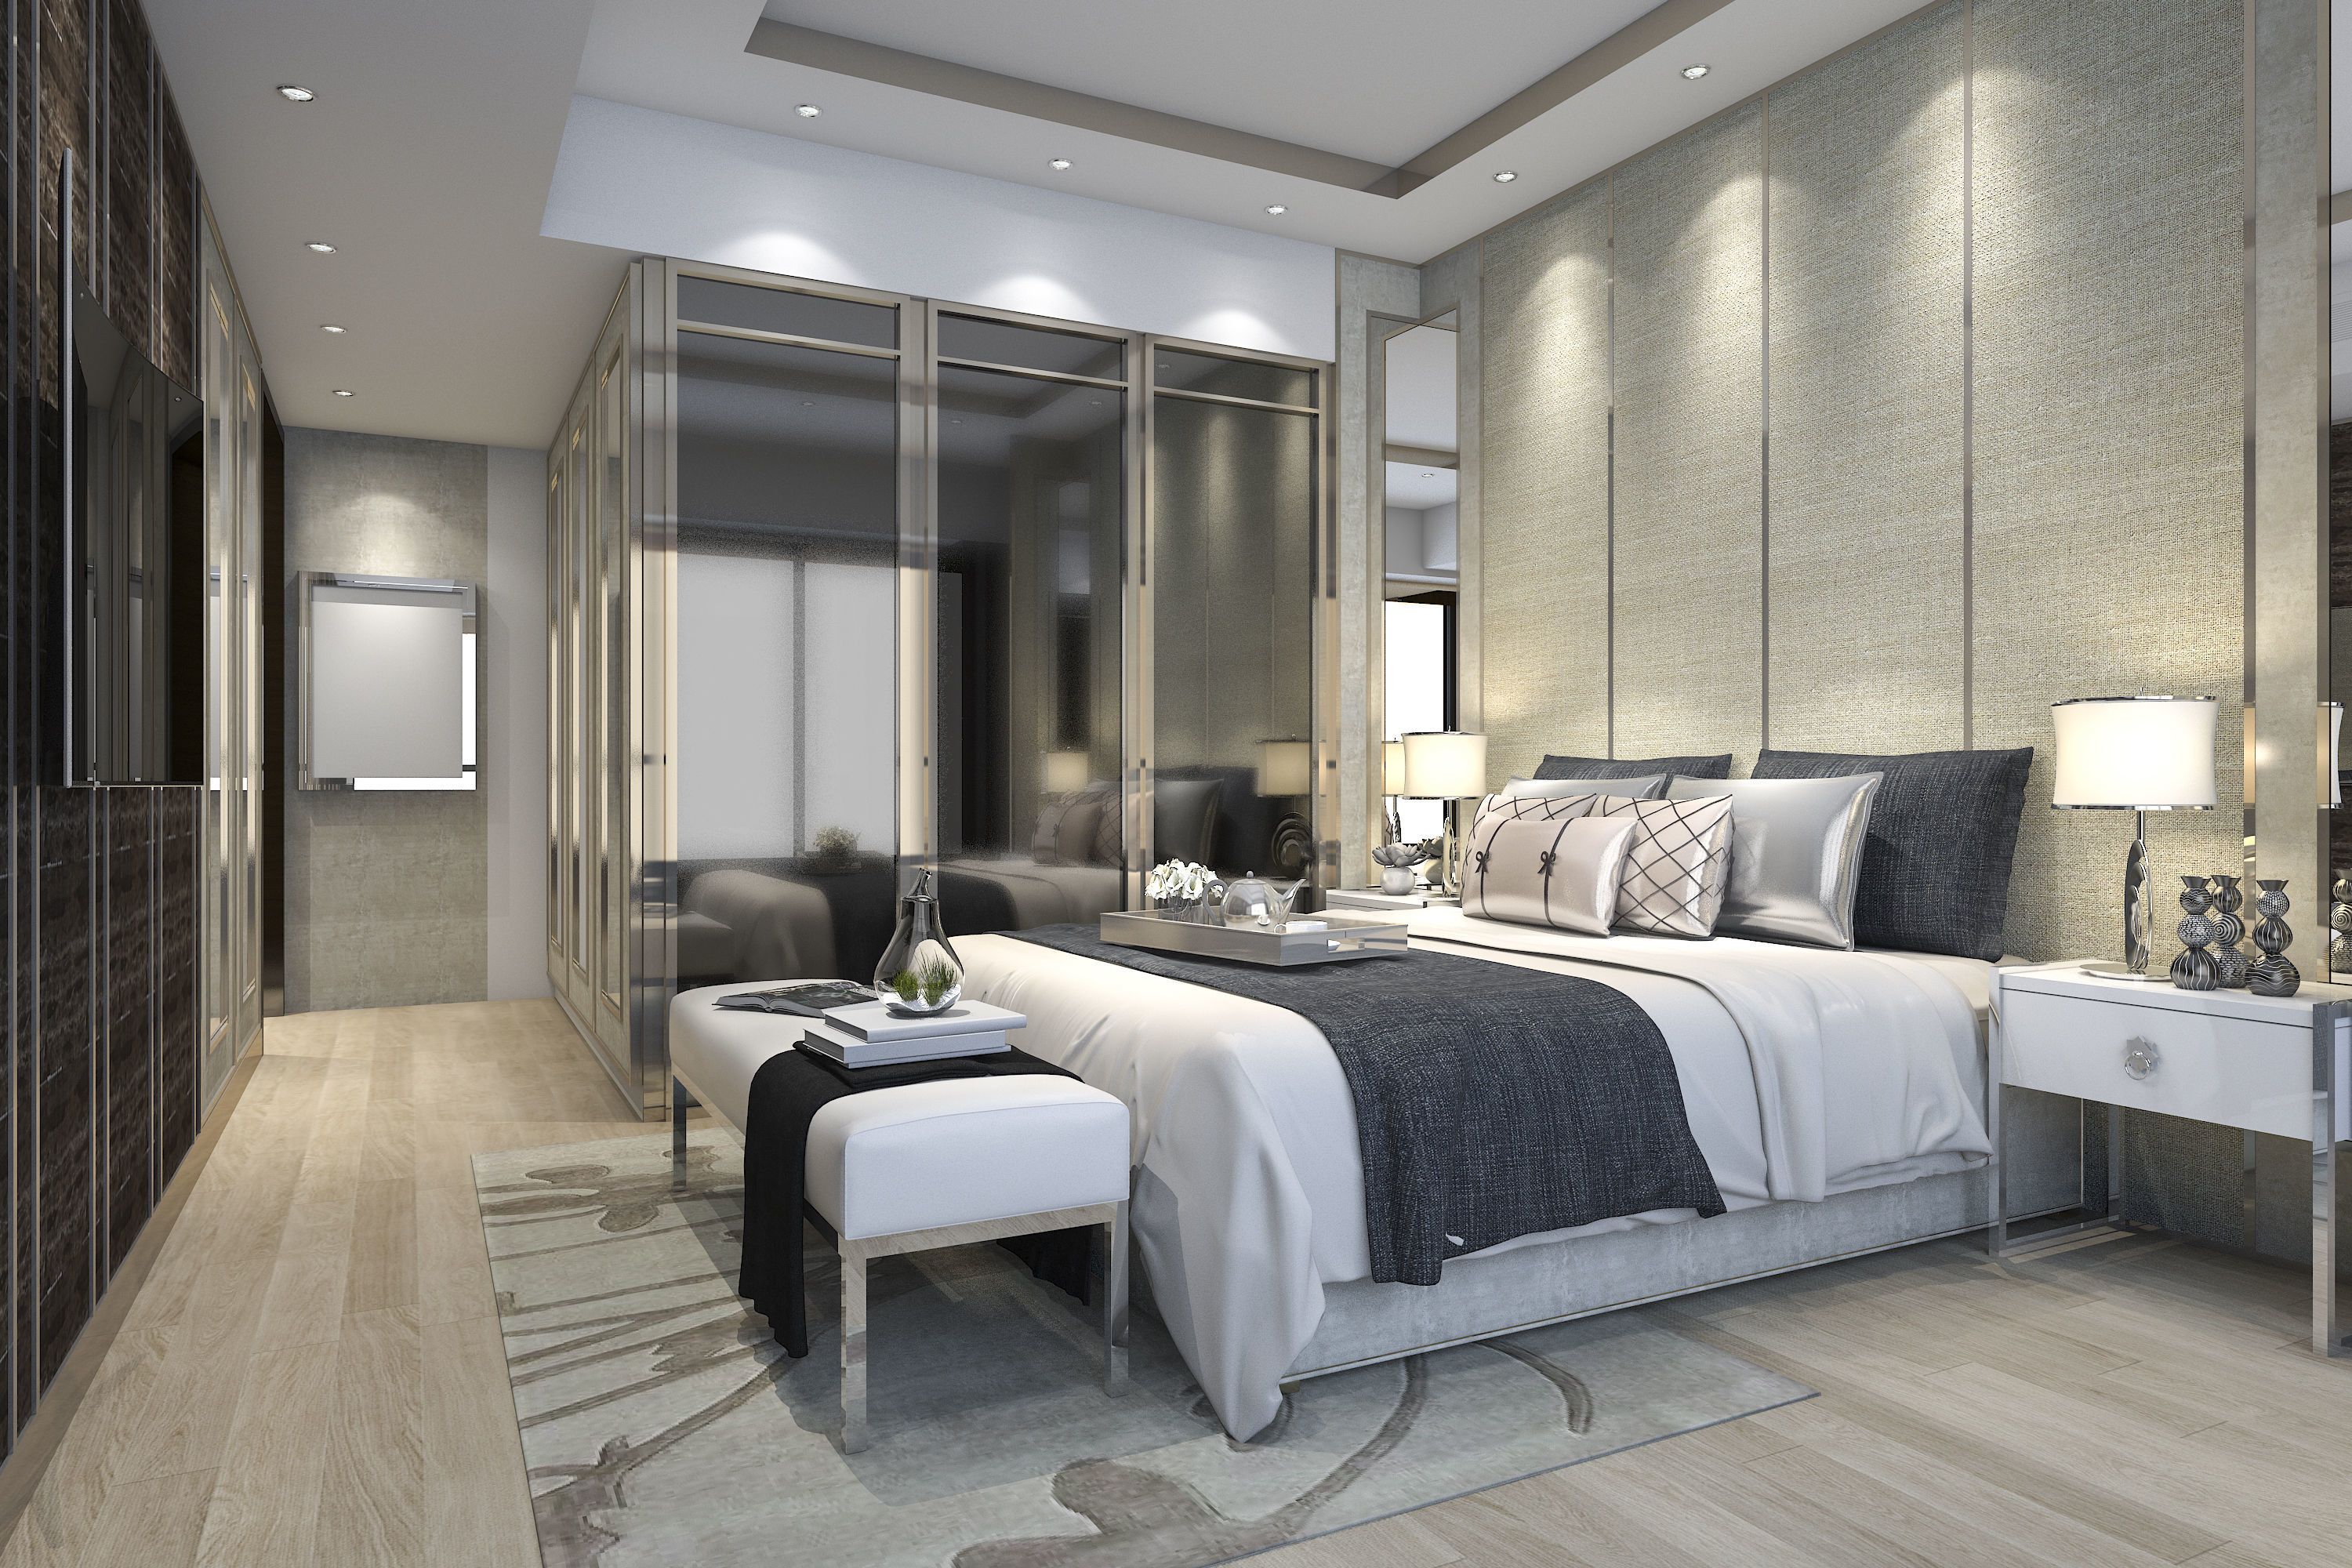 Luxury Modern Bedroom Suite In Hotel With Wardrobe 3d Model in 13 Genius Ways How to Build Luxury Modern Bedroom